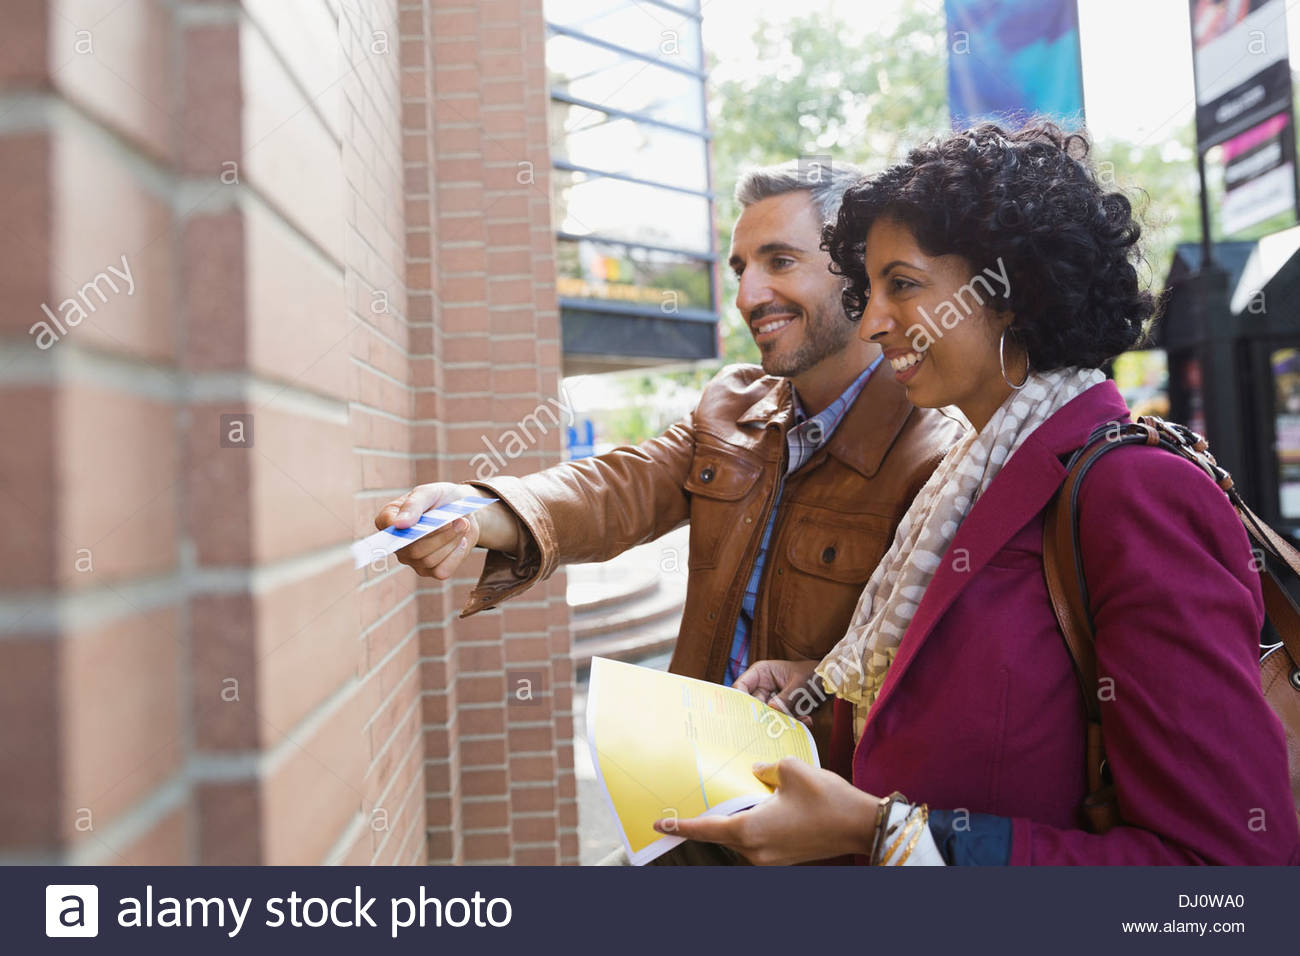 Couple handing tickets to attendant for show entry - Stock Image